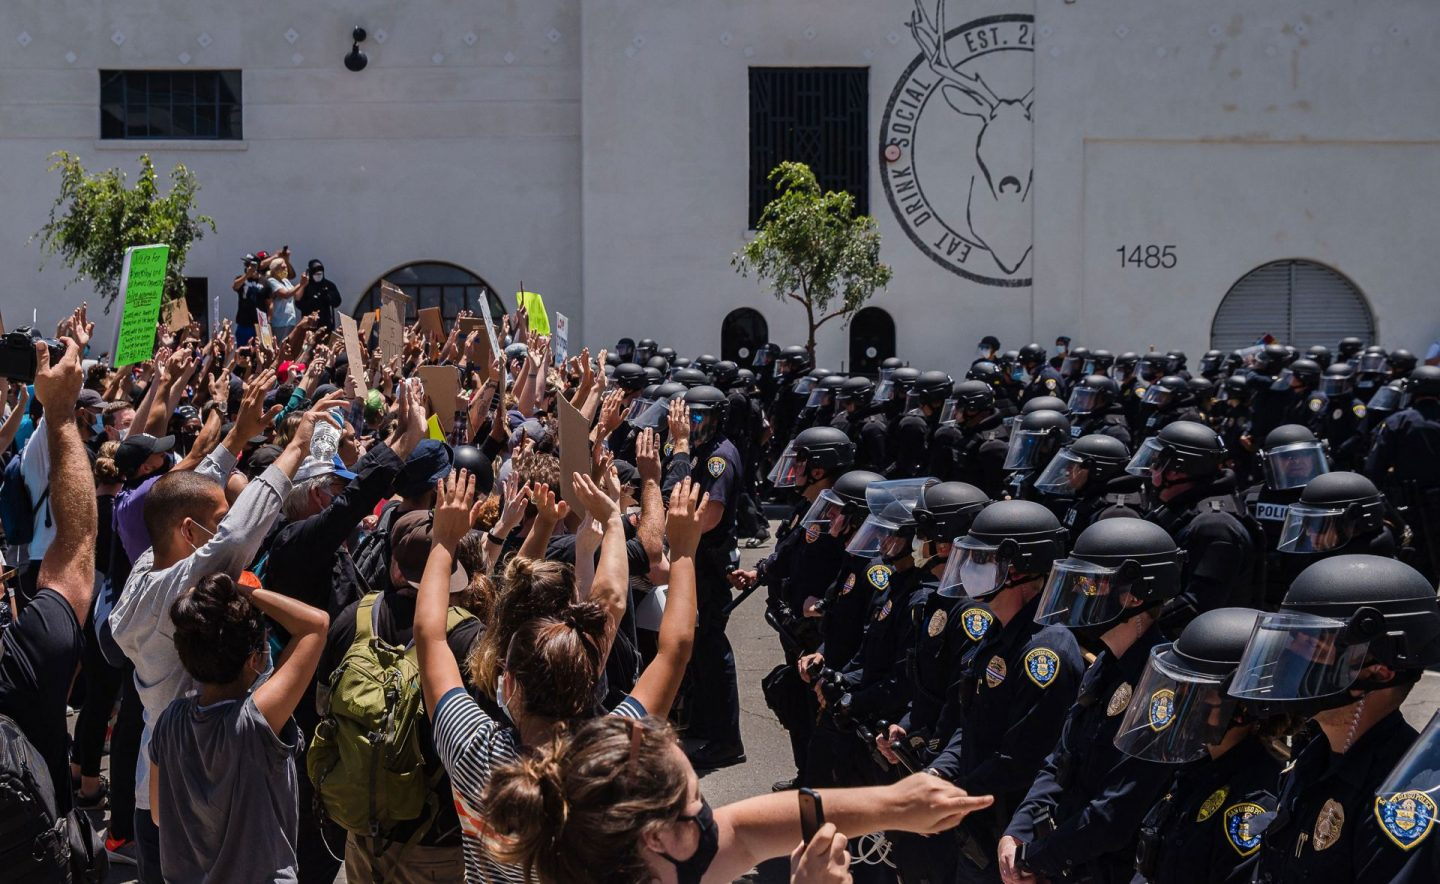 Turn protests into political movements